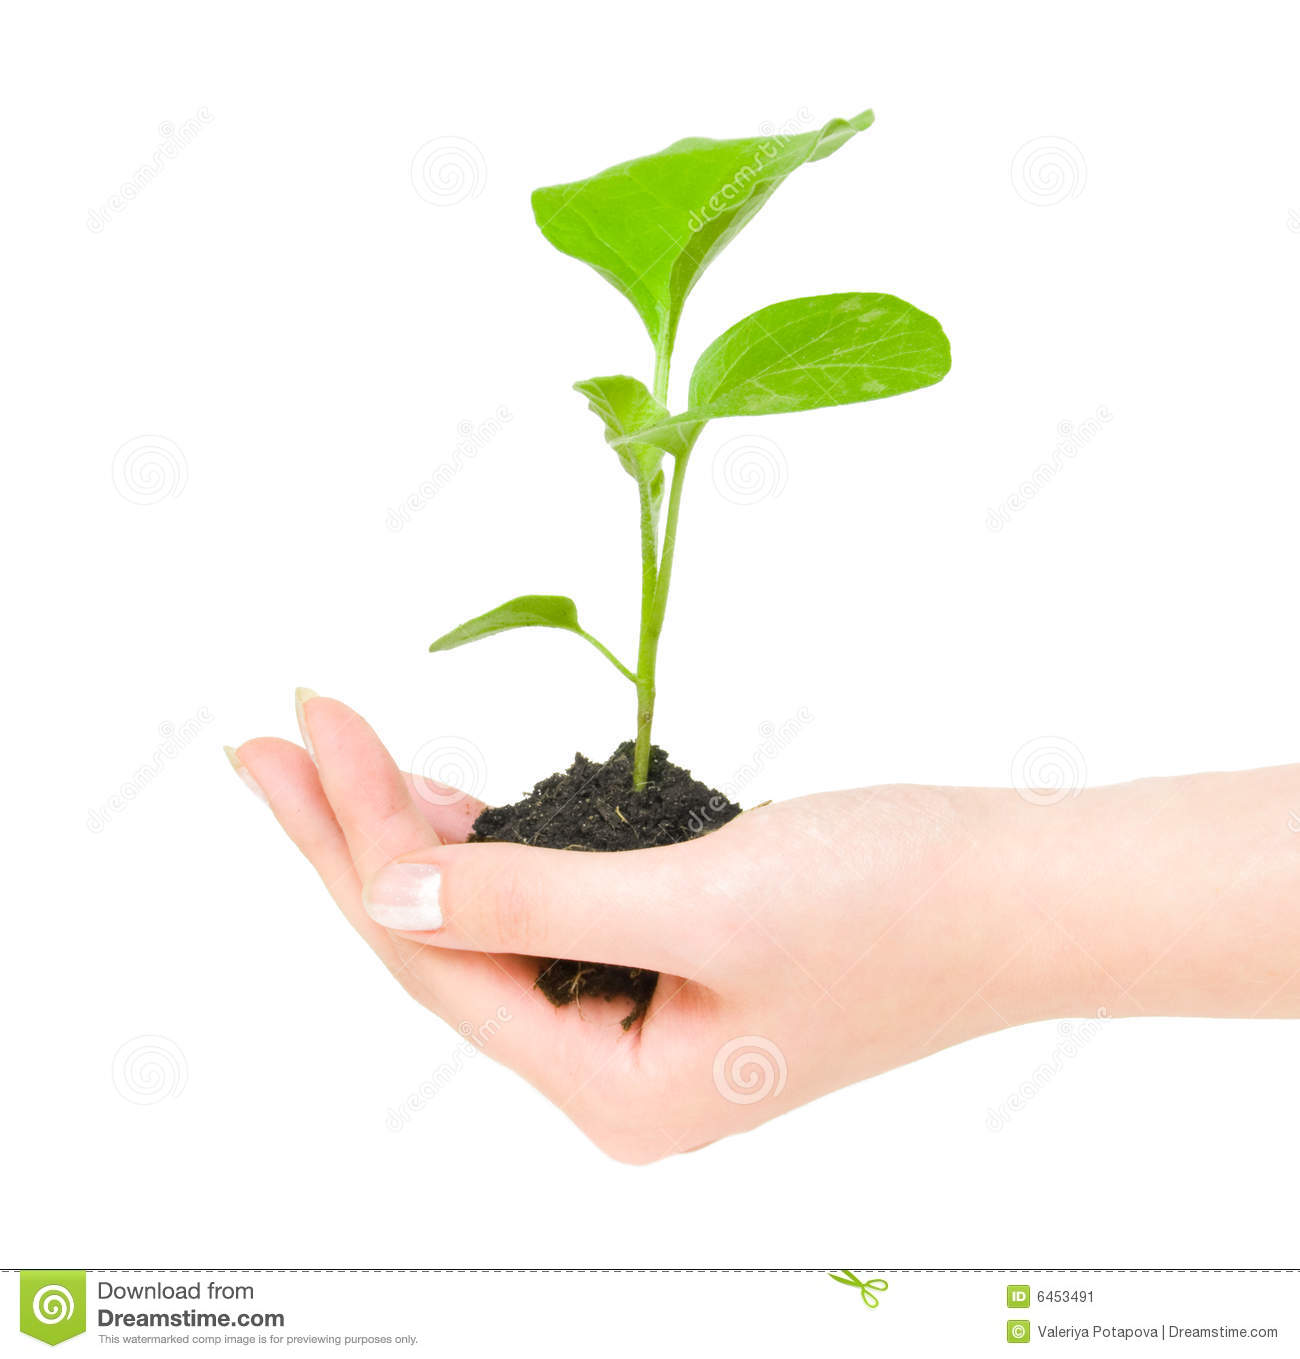 Growing green plant in a hand